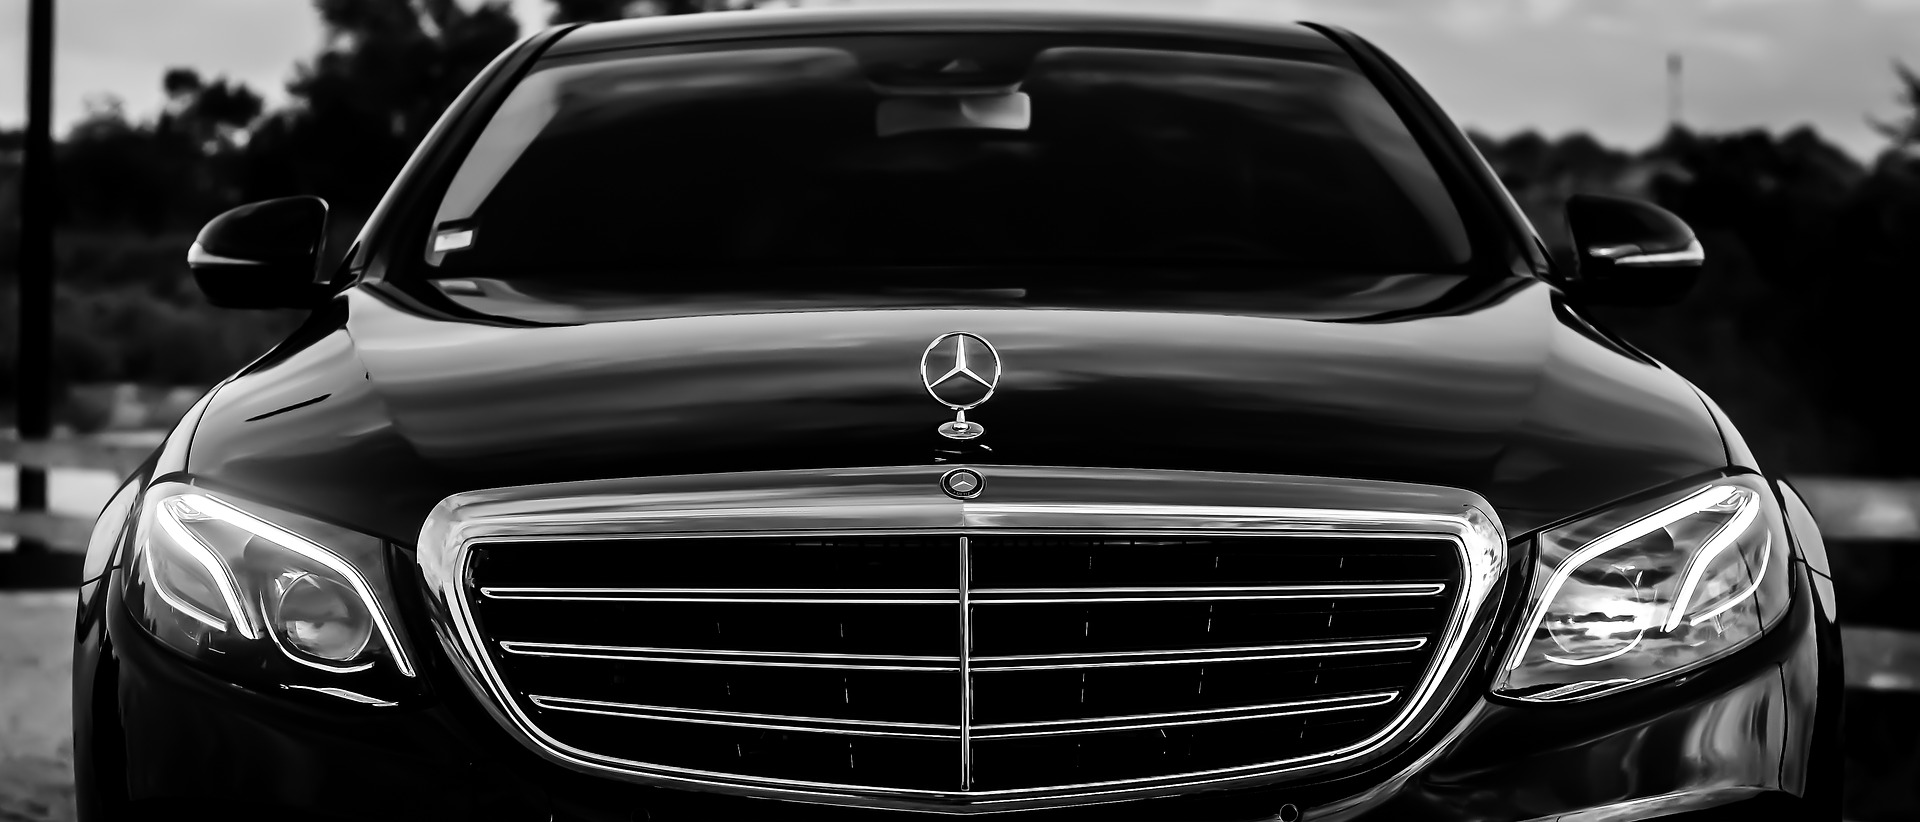 Airport Transfers to All London Airports - Professional & Reliable Airport Taxis and Private Hires in Brighton & Lewes Area.